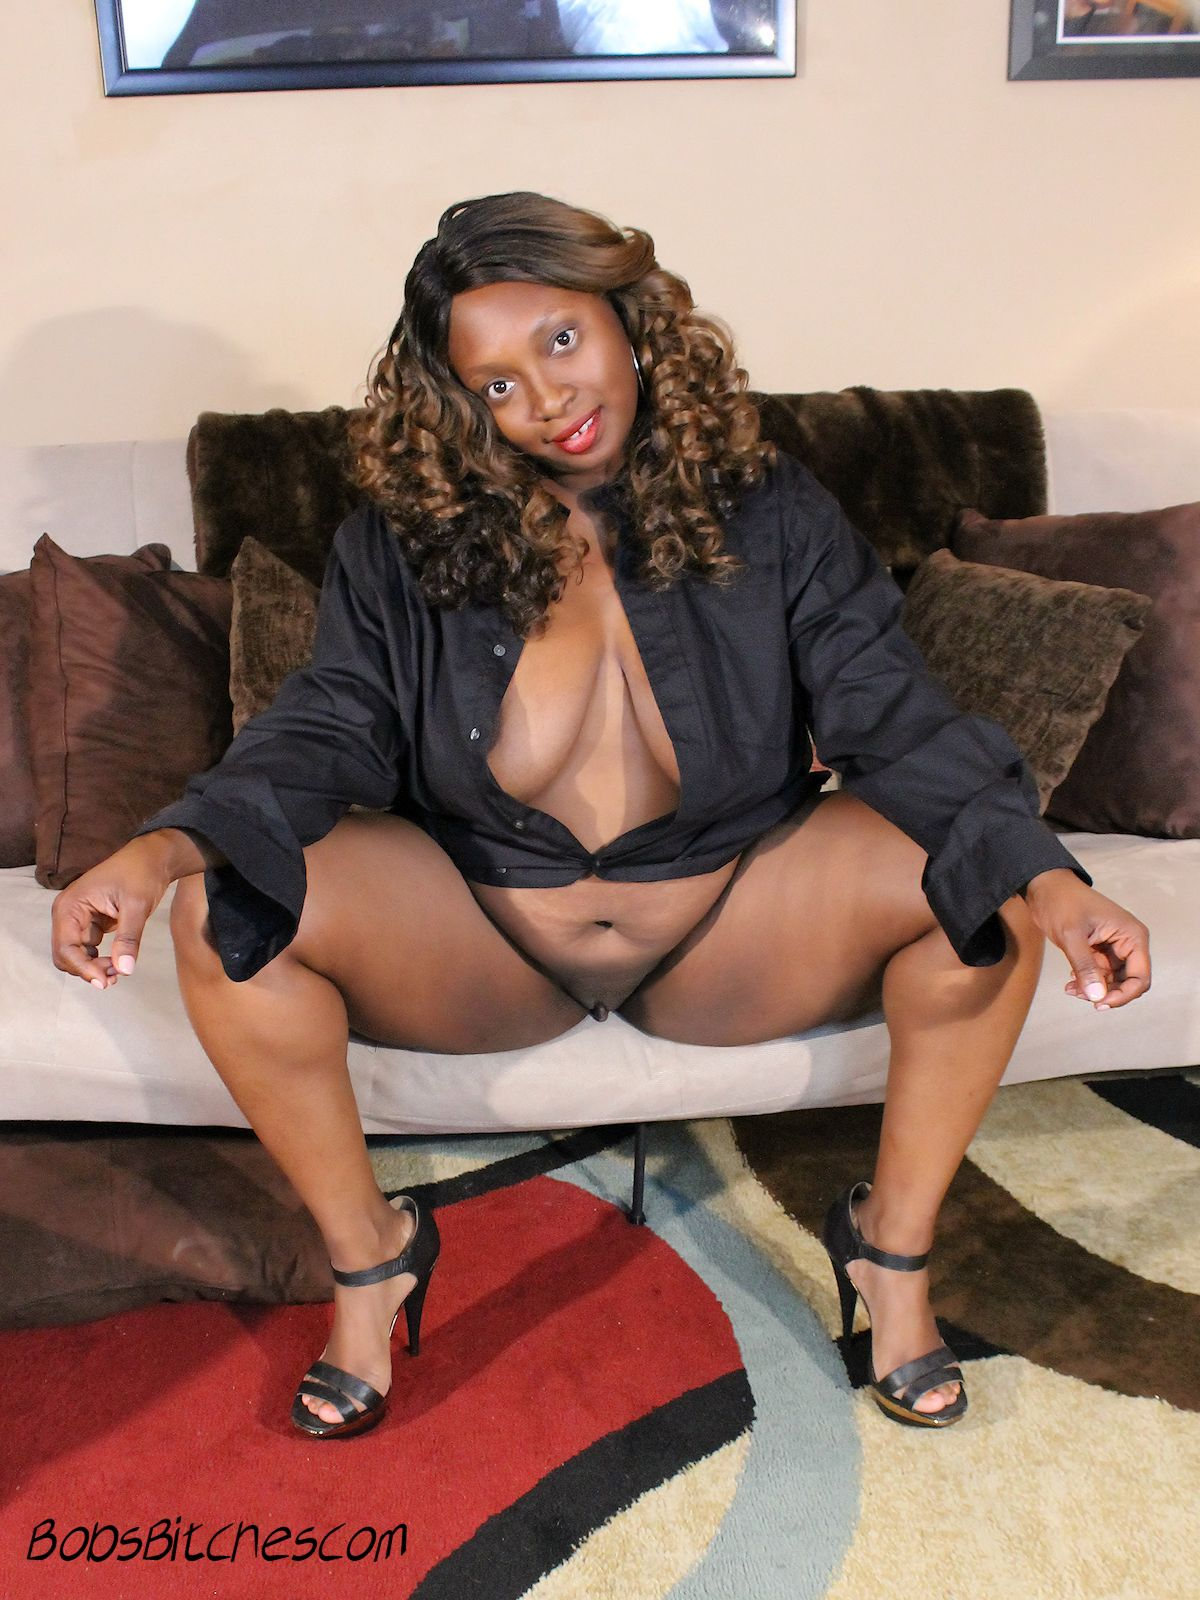 Big tit ebony milf spreading her high heeled legs.